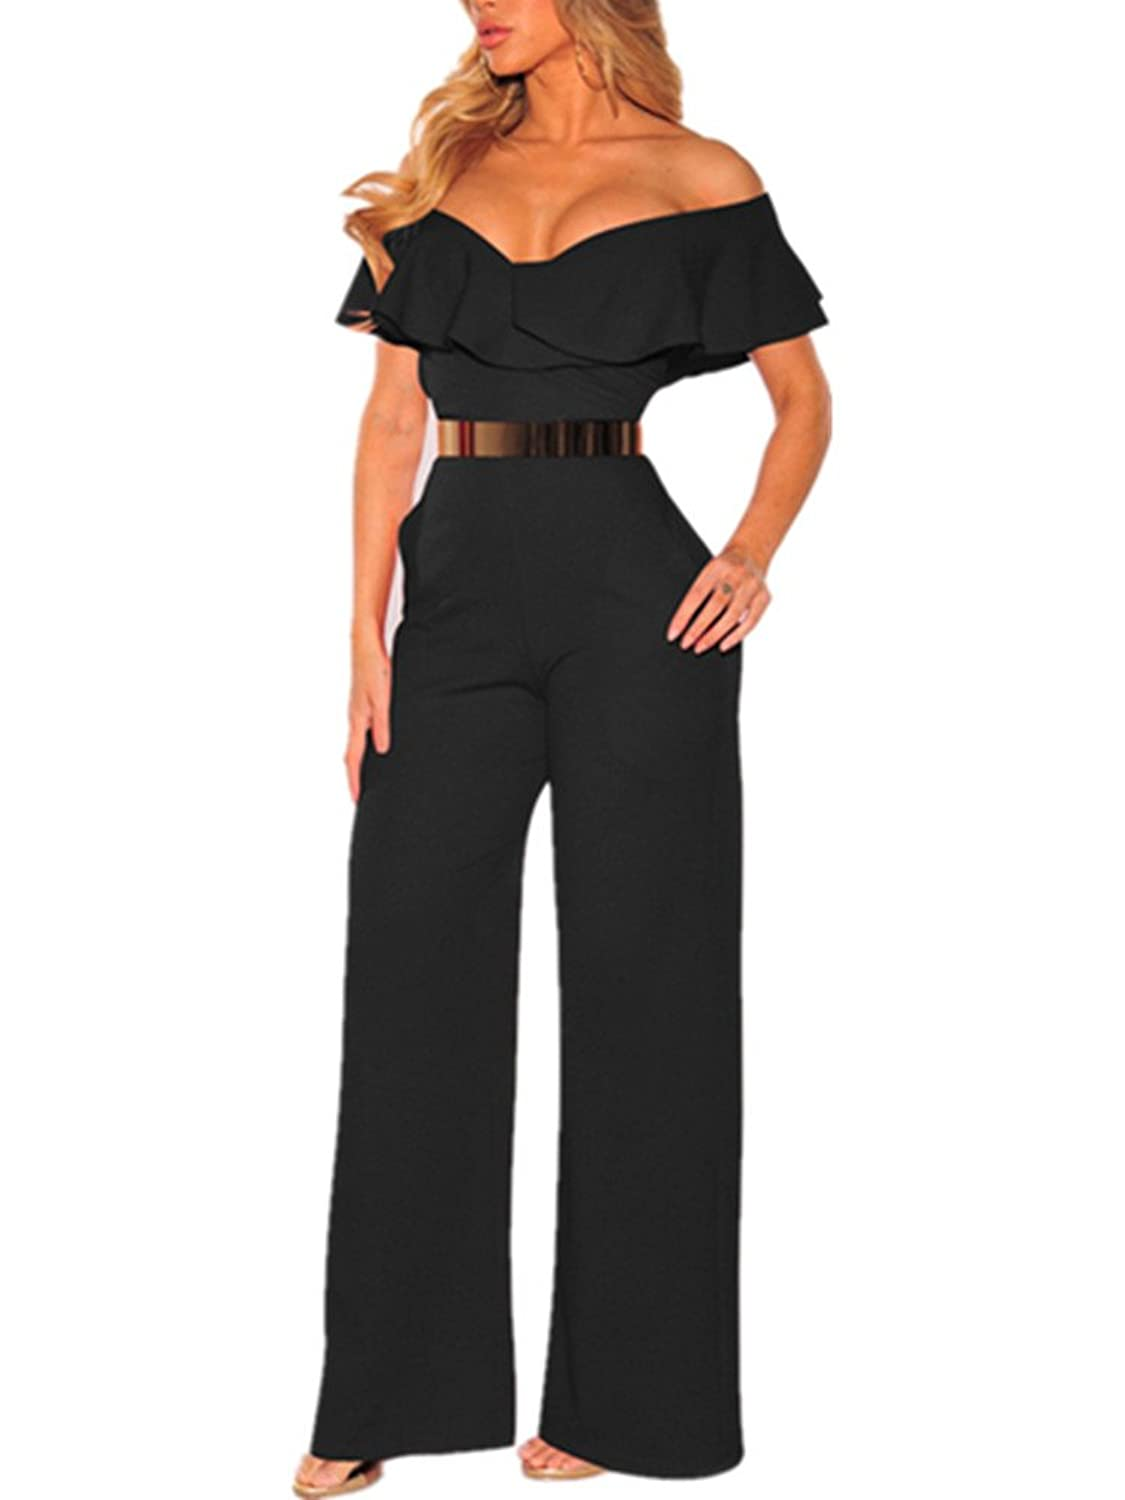 a388bbeeade6 Top 10 wholesale One Piece Pant Suit Strapless - Chinabrands.com